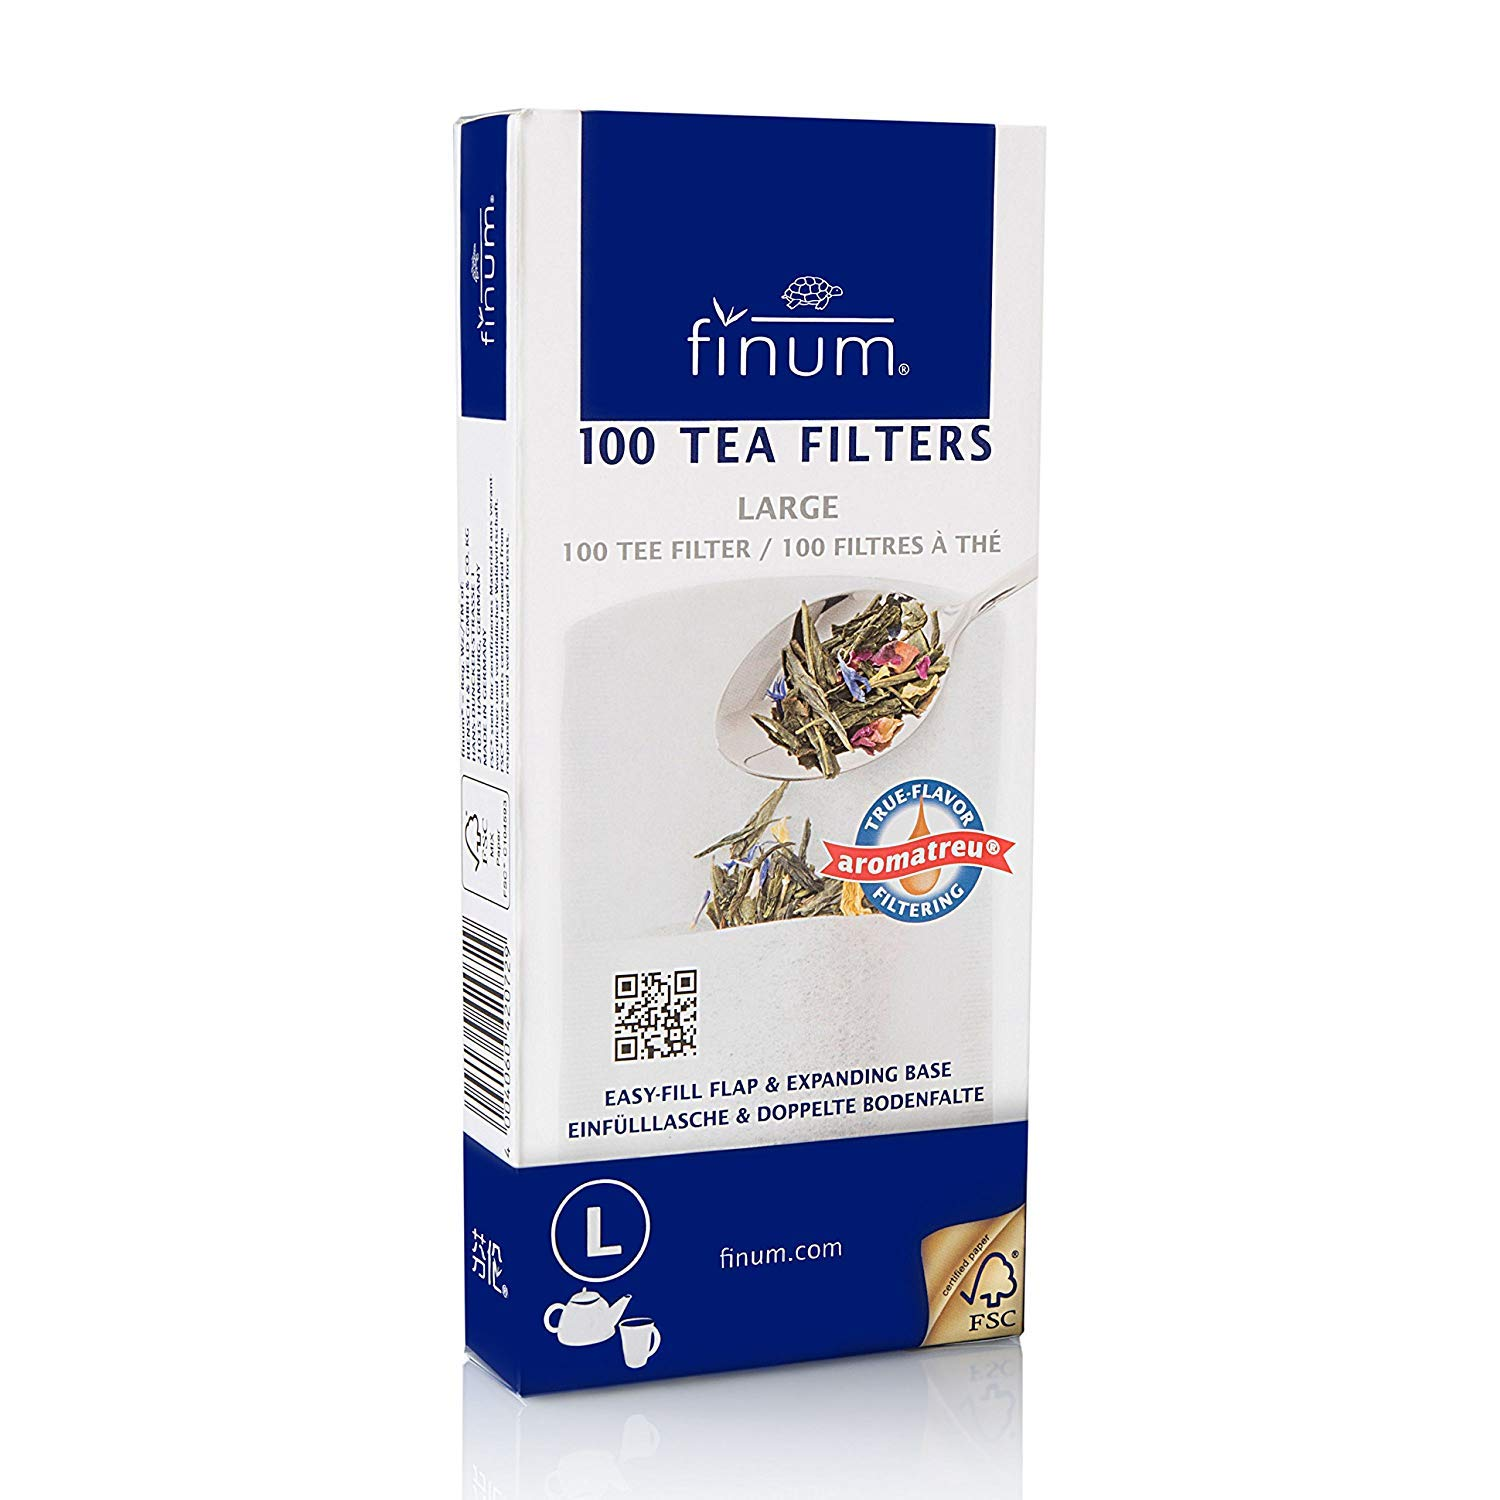 Finum Disposable Paper Tea Filter Bags for Loose Tea, White, Large, 100 Count (Pack of 24)